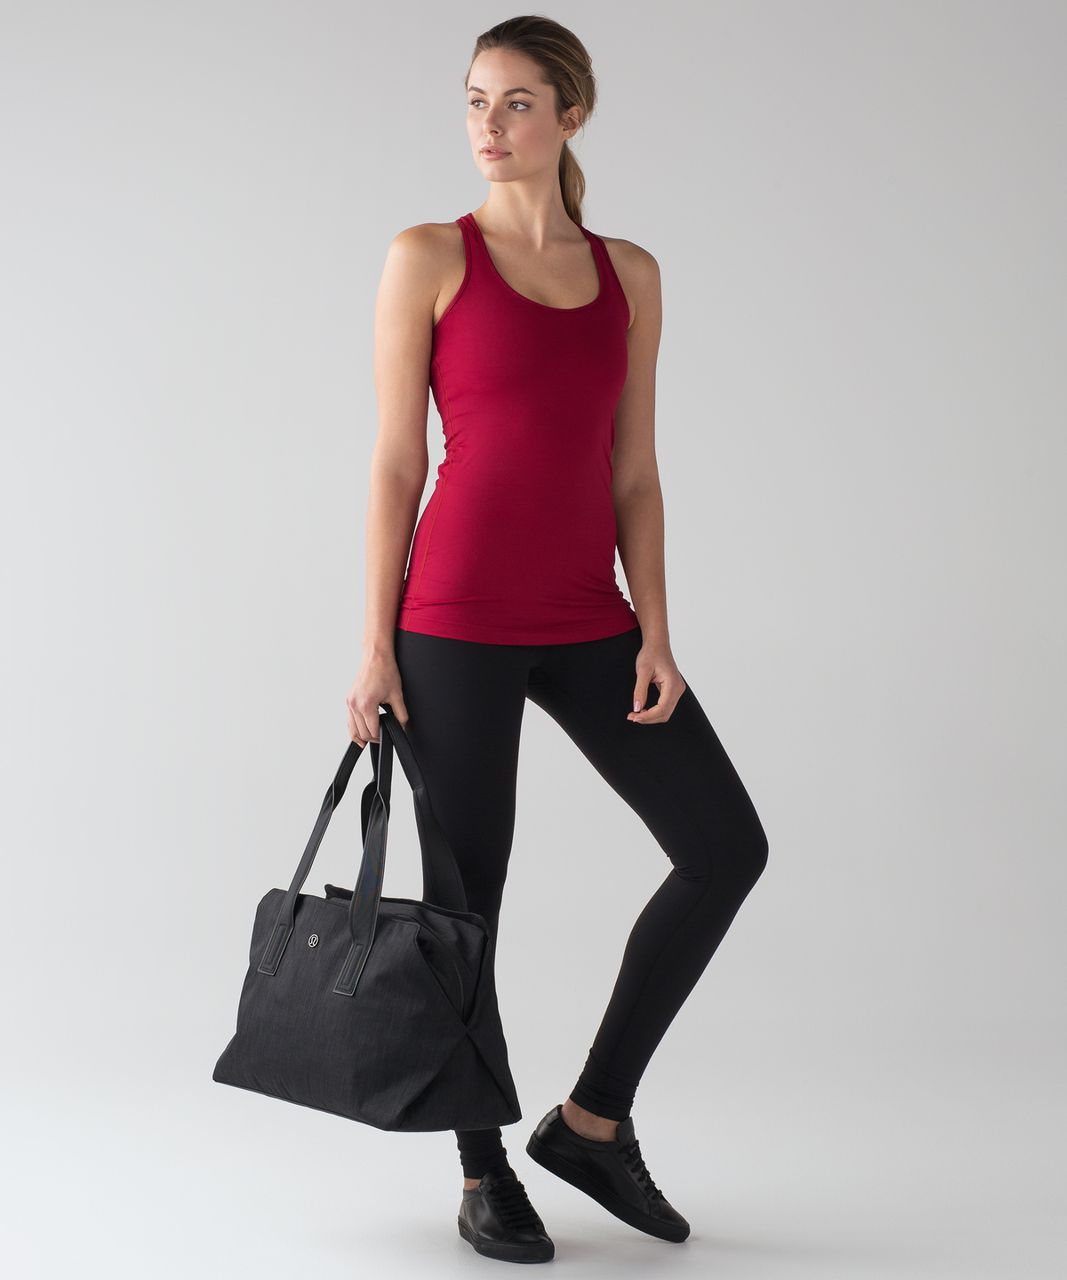 Lululemon Cool Racerback - Cranberry